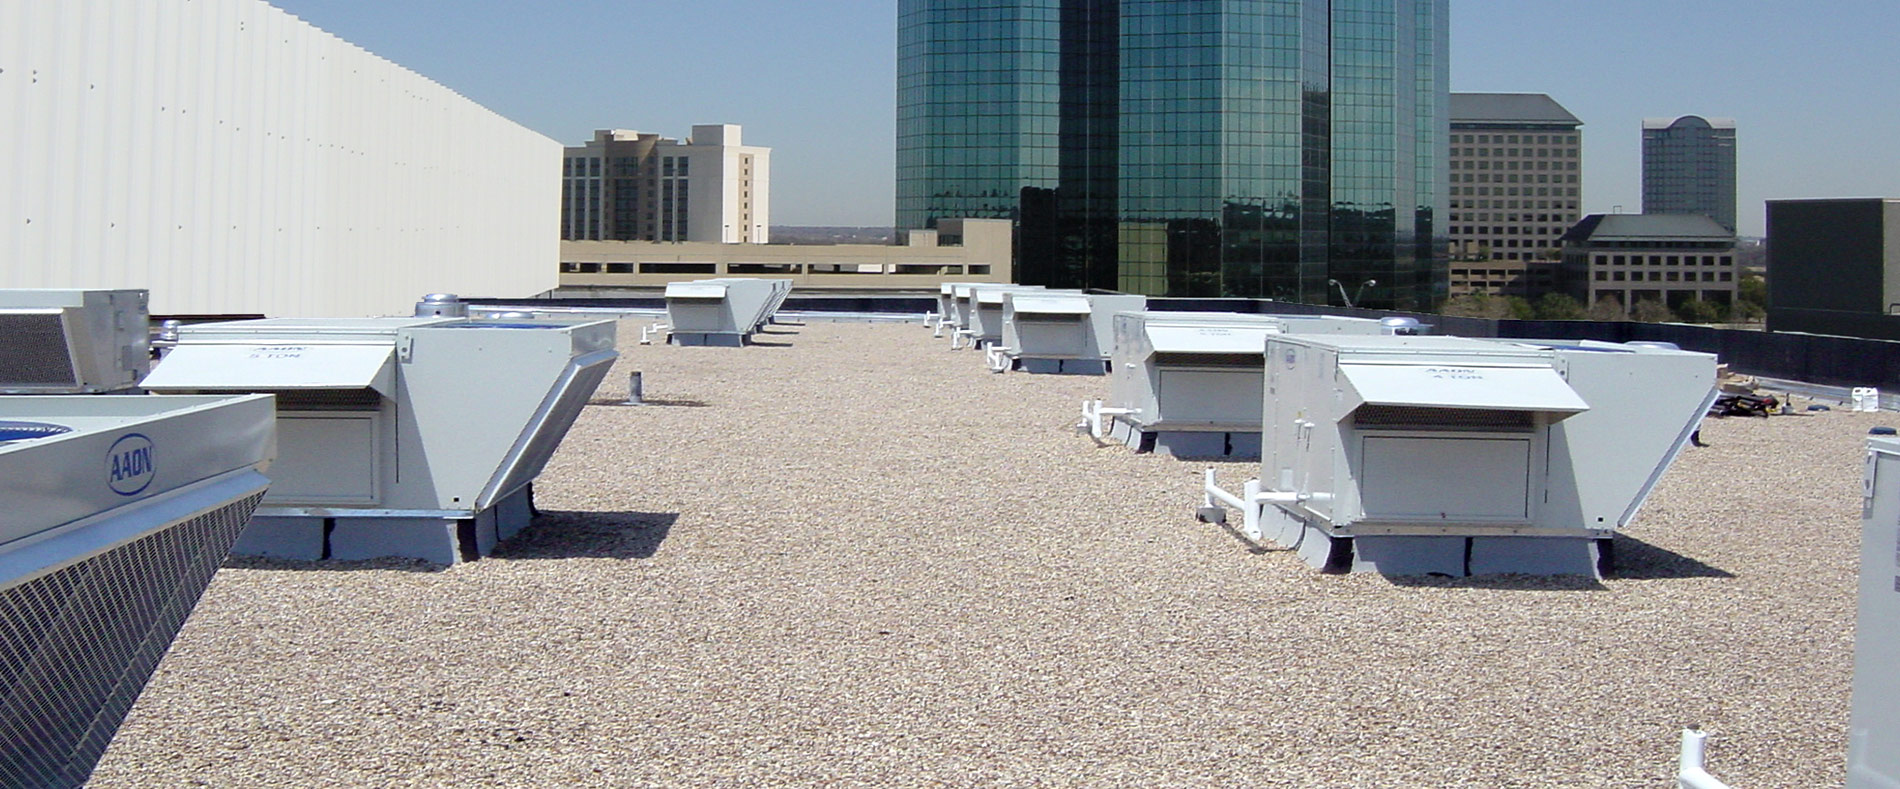 Commercial Roofing Plano The Woodlands Tx Trident